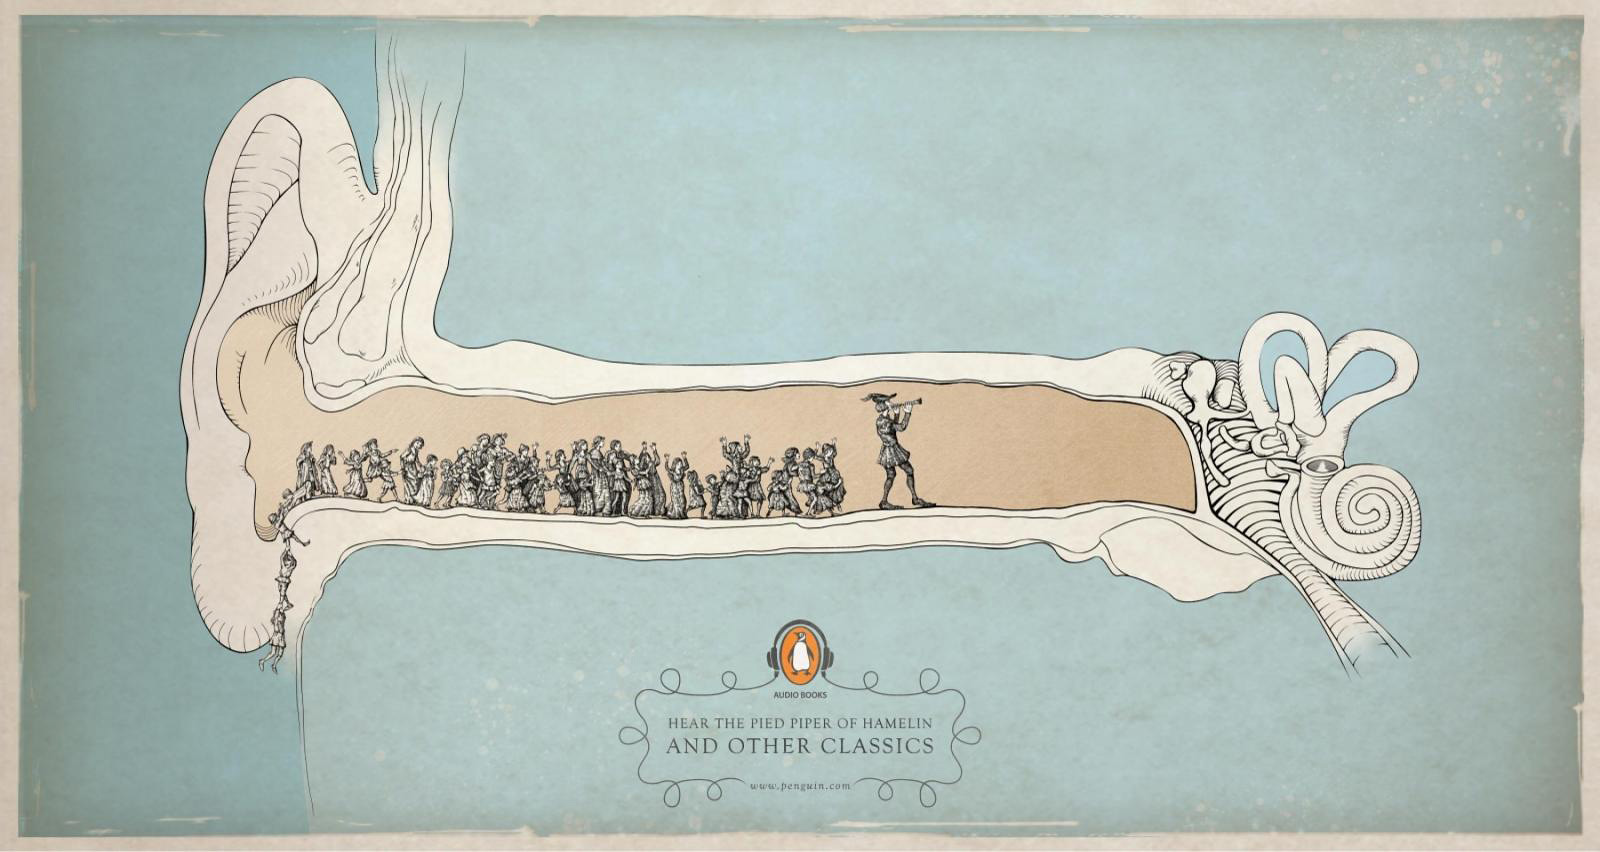 https://i2.wp.com/theinspirationroom.com/daily/print/2012/5/penguin_audio_books_pied_piper.jpg